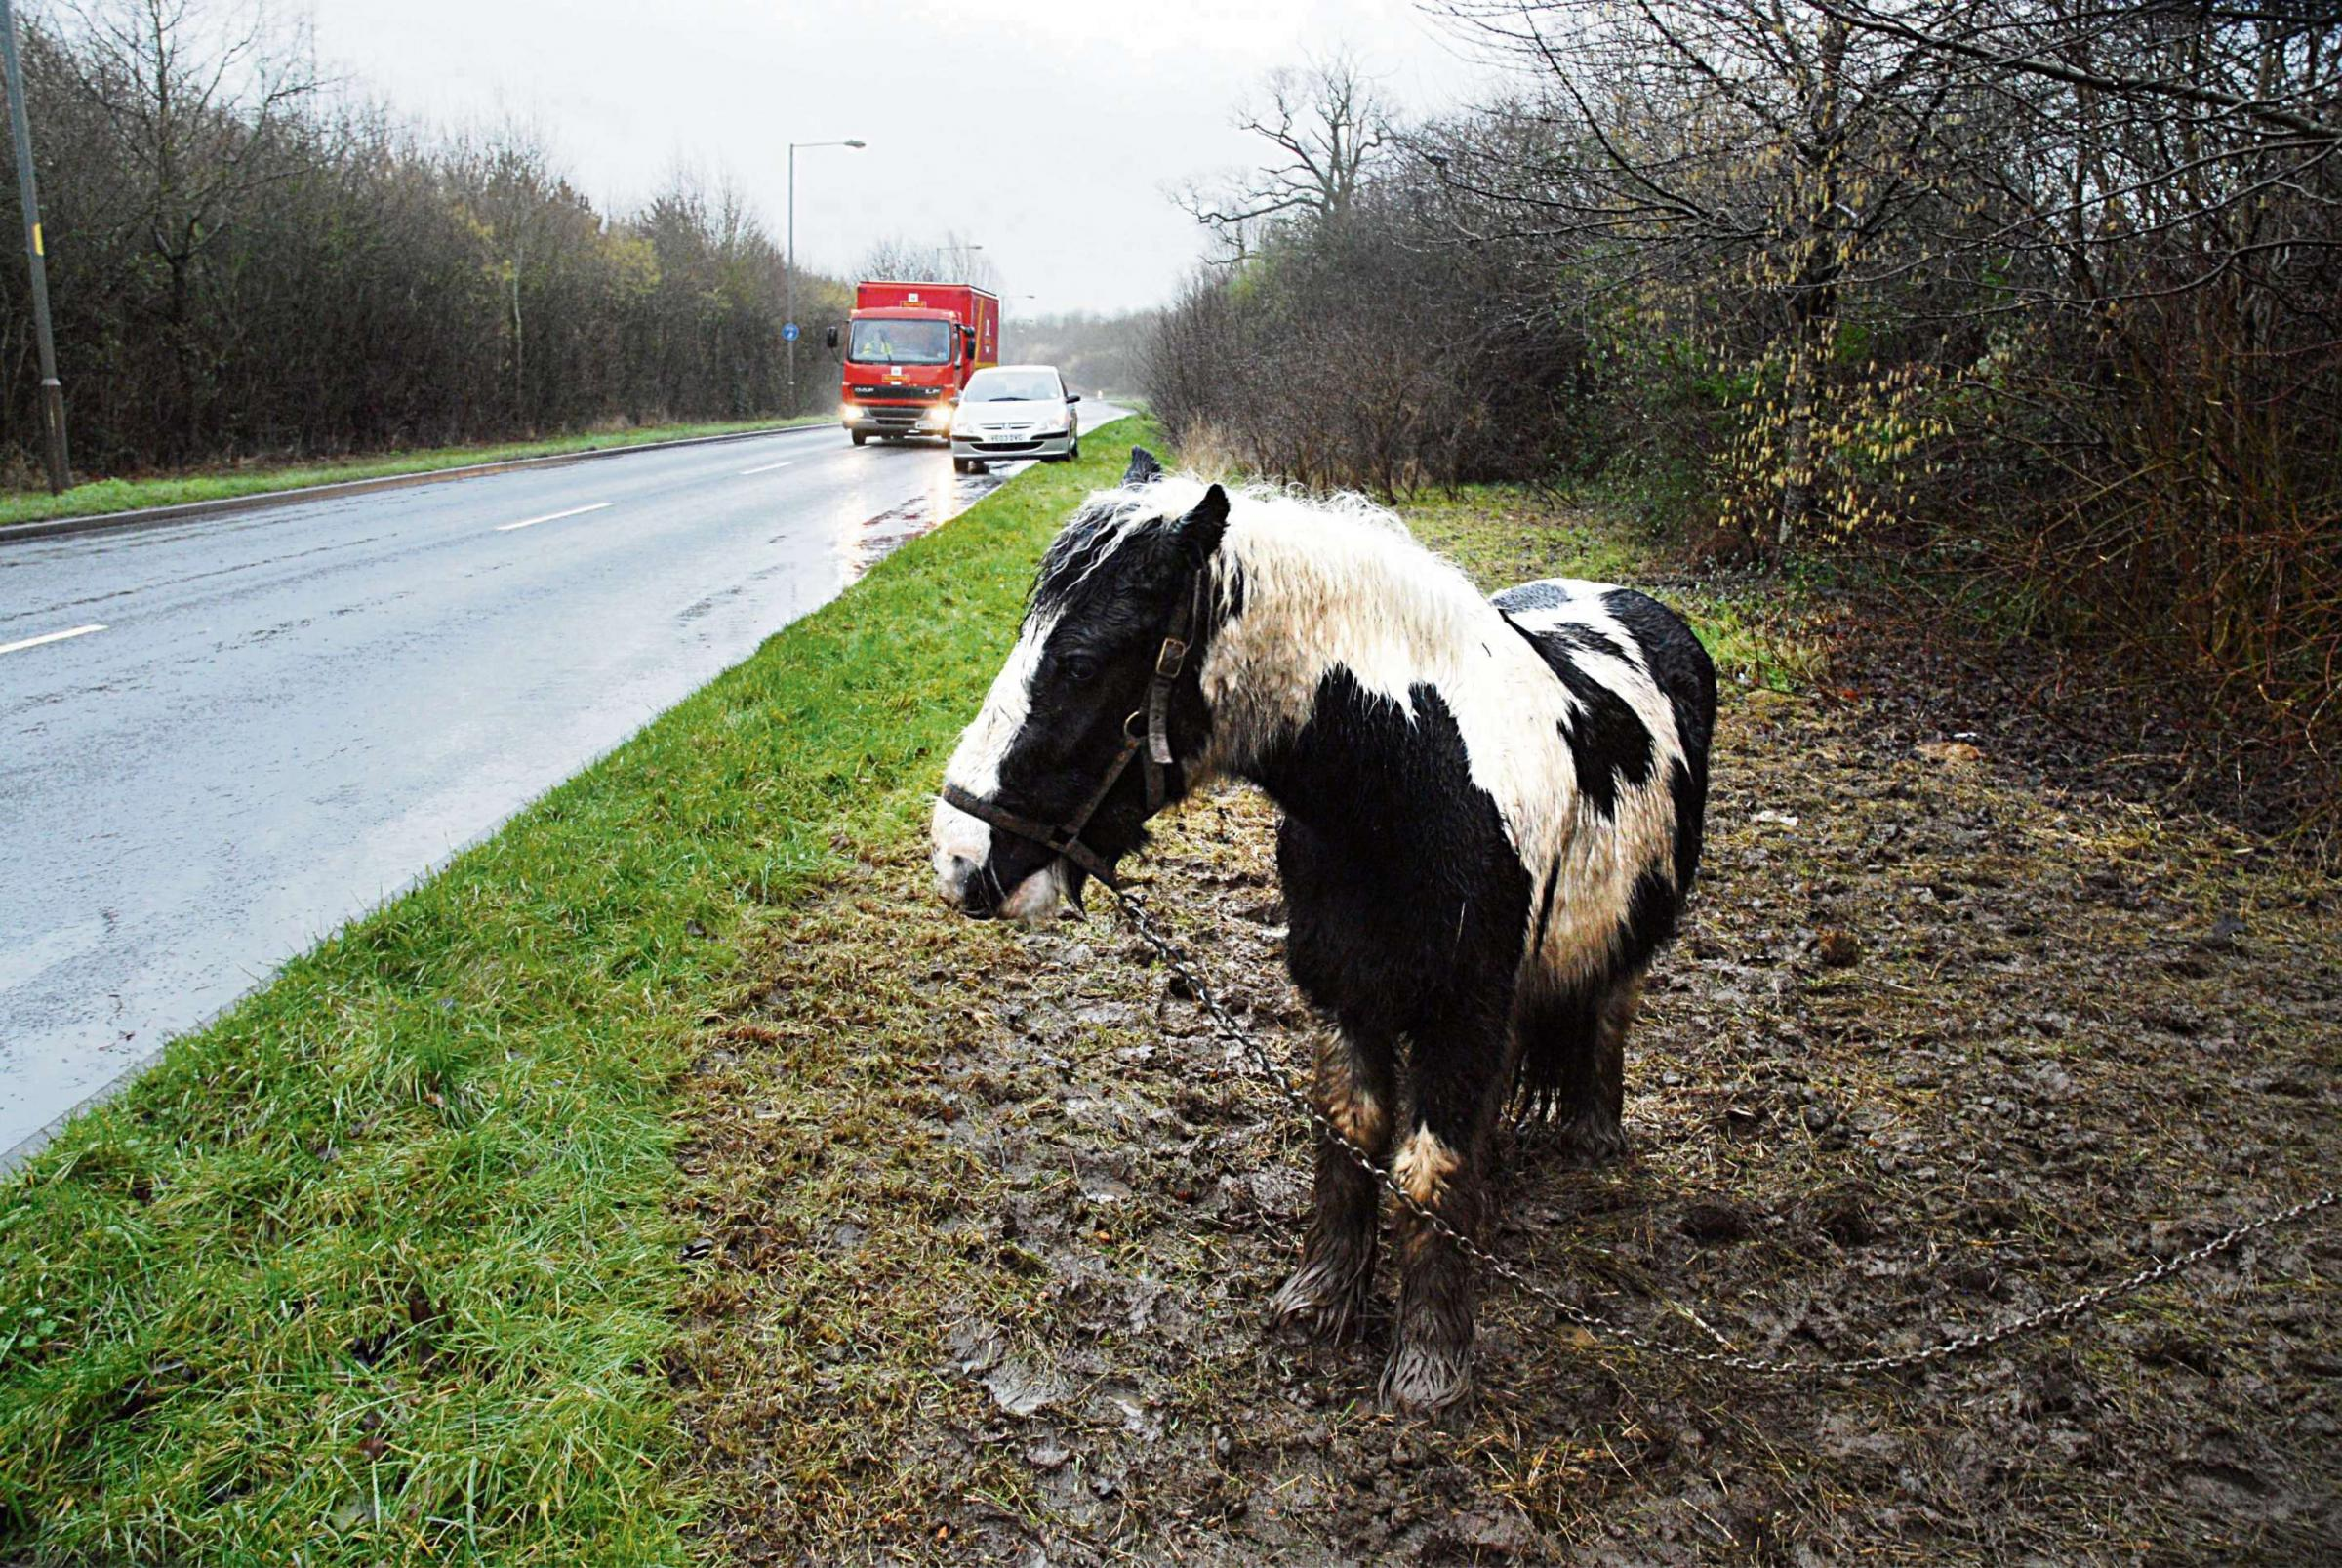 TETHERED: The horses, pictured in January, which were left to graze by the side of the road. Picture by Nick Toogood.